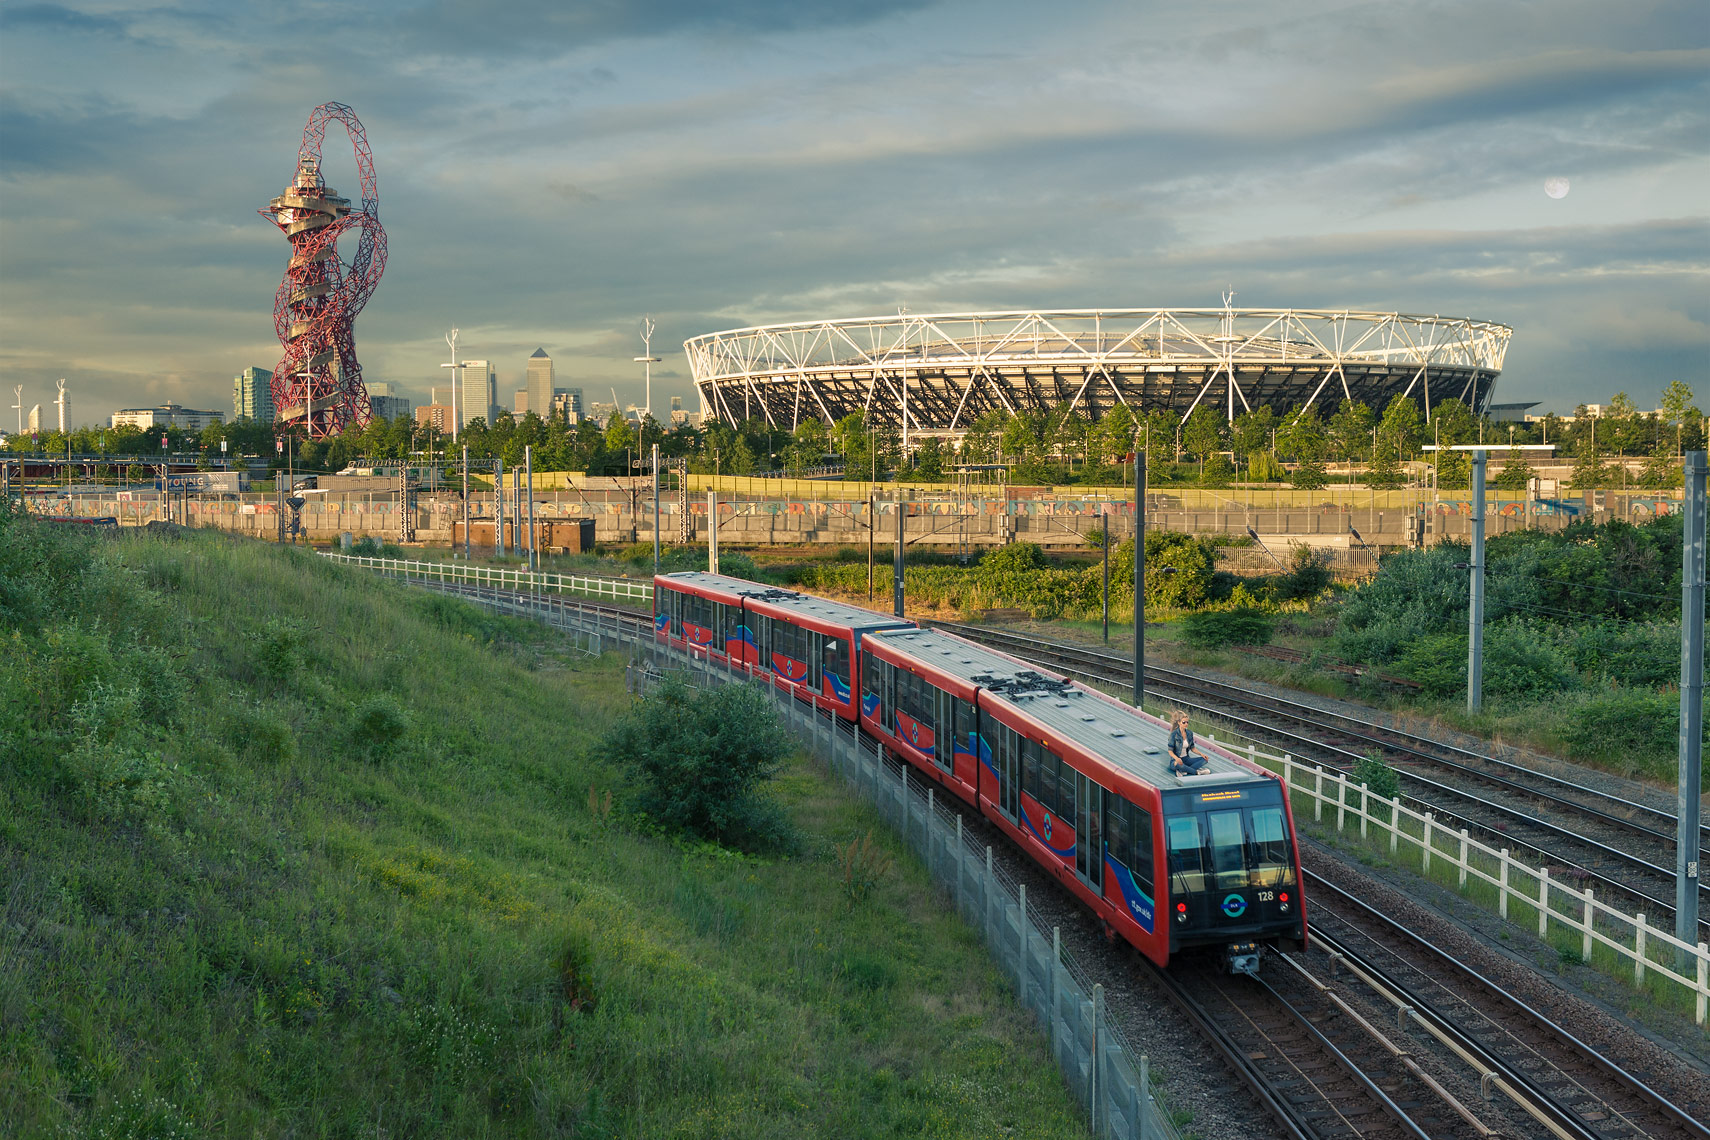 Oksana on the DLR, London, E20